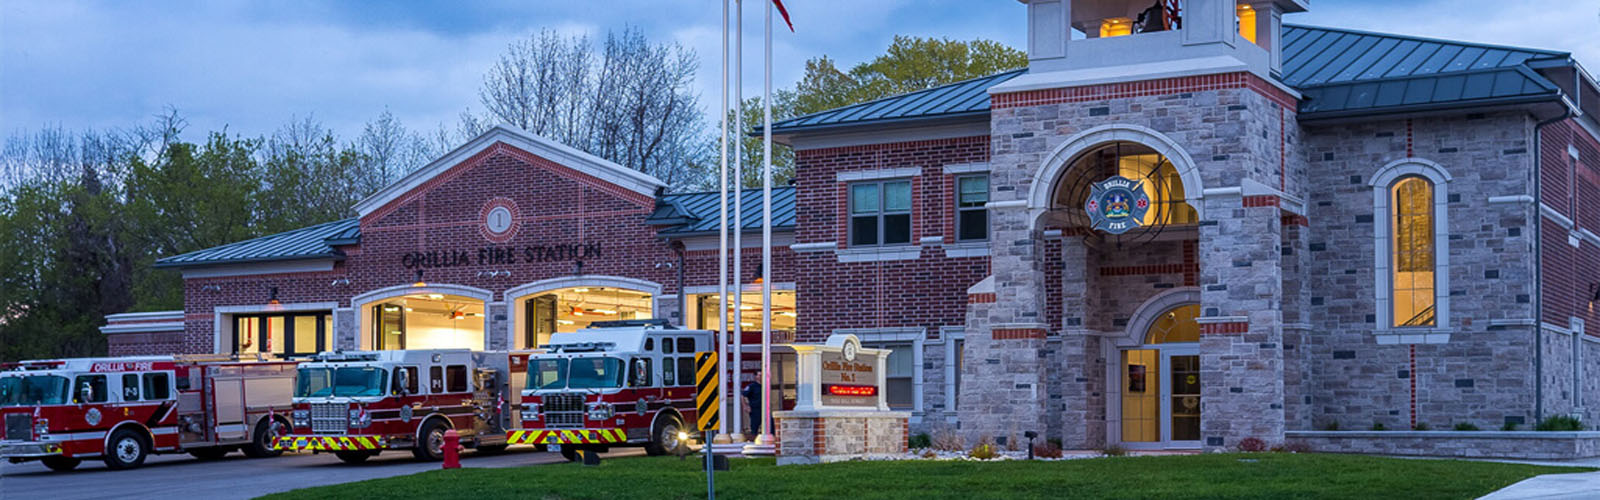 Photo of Orillia Fire Station One with fire trucks in foreground.